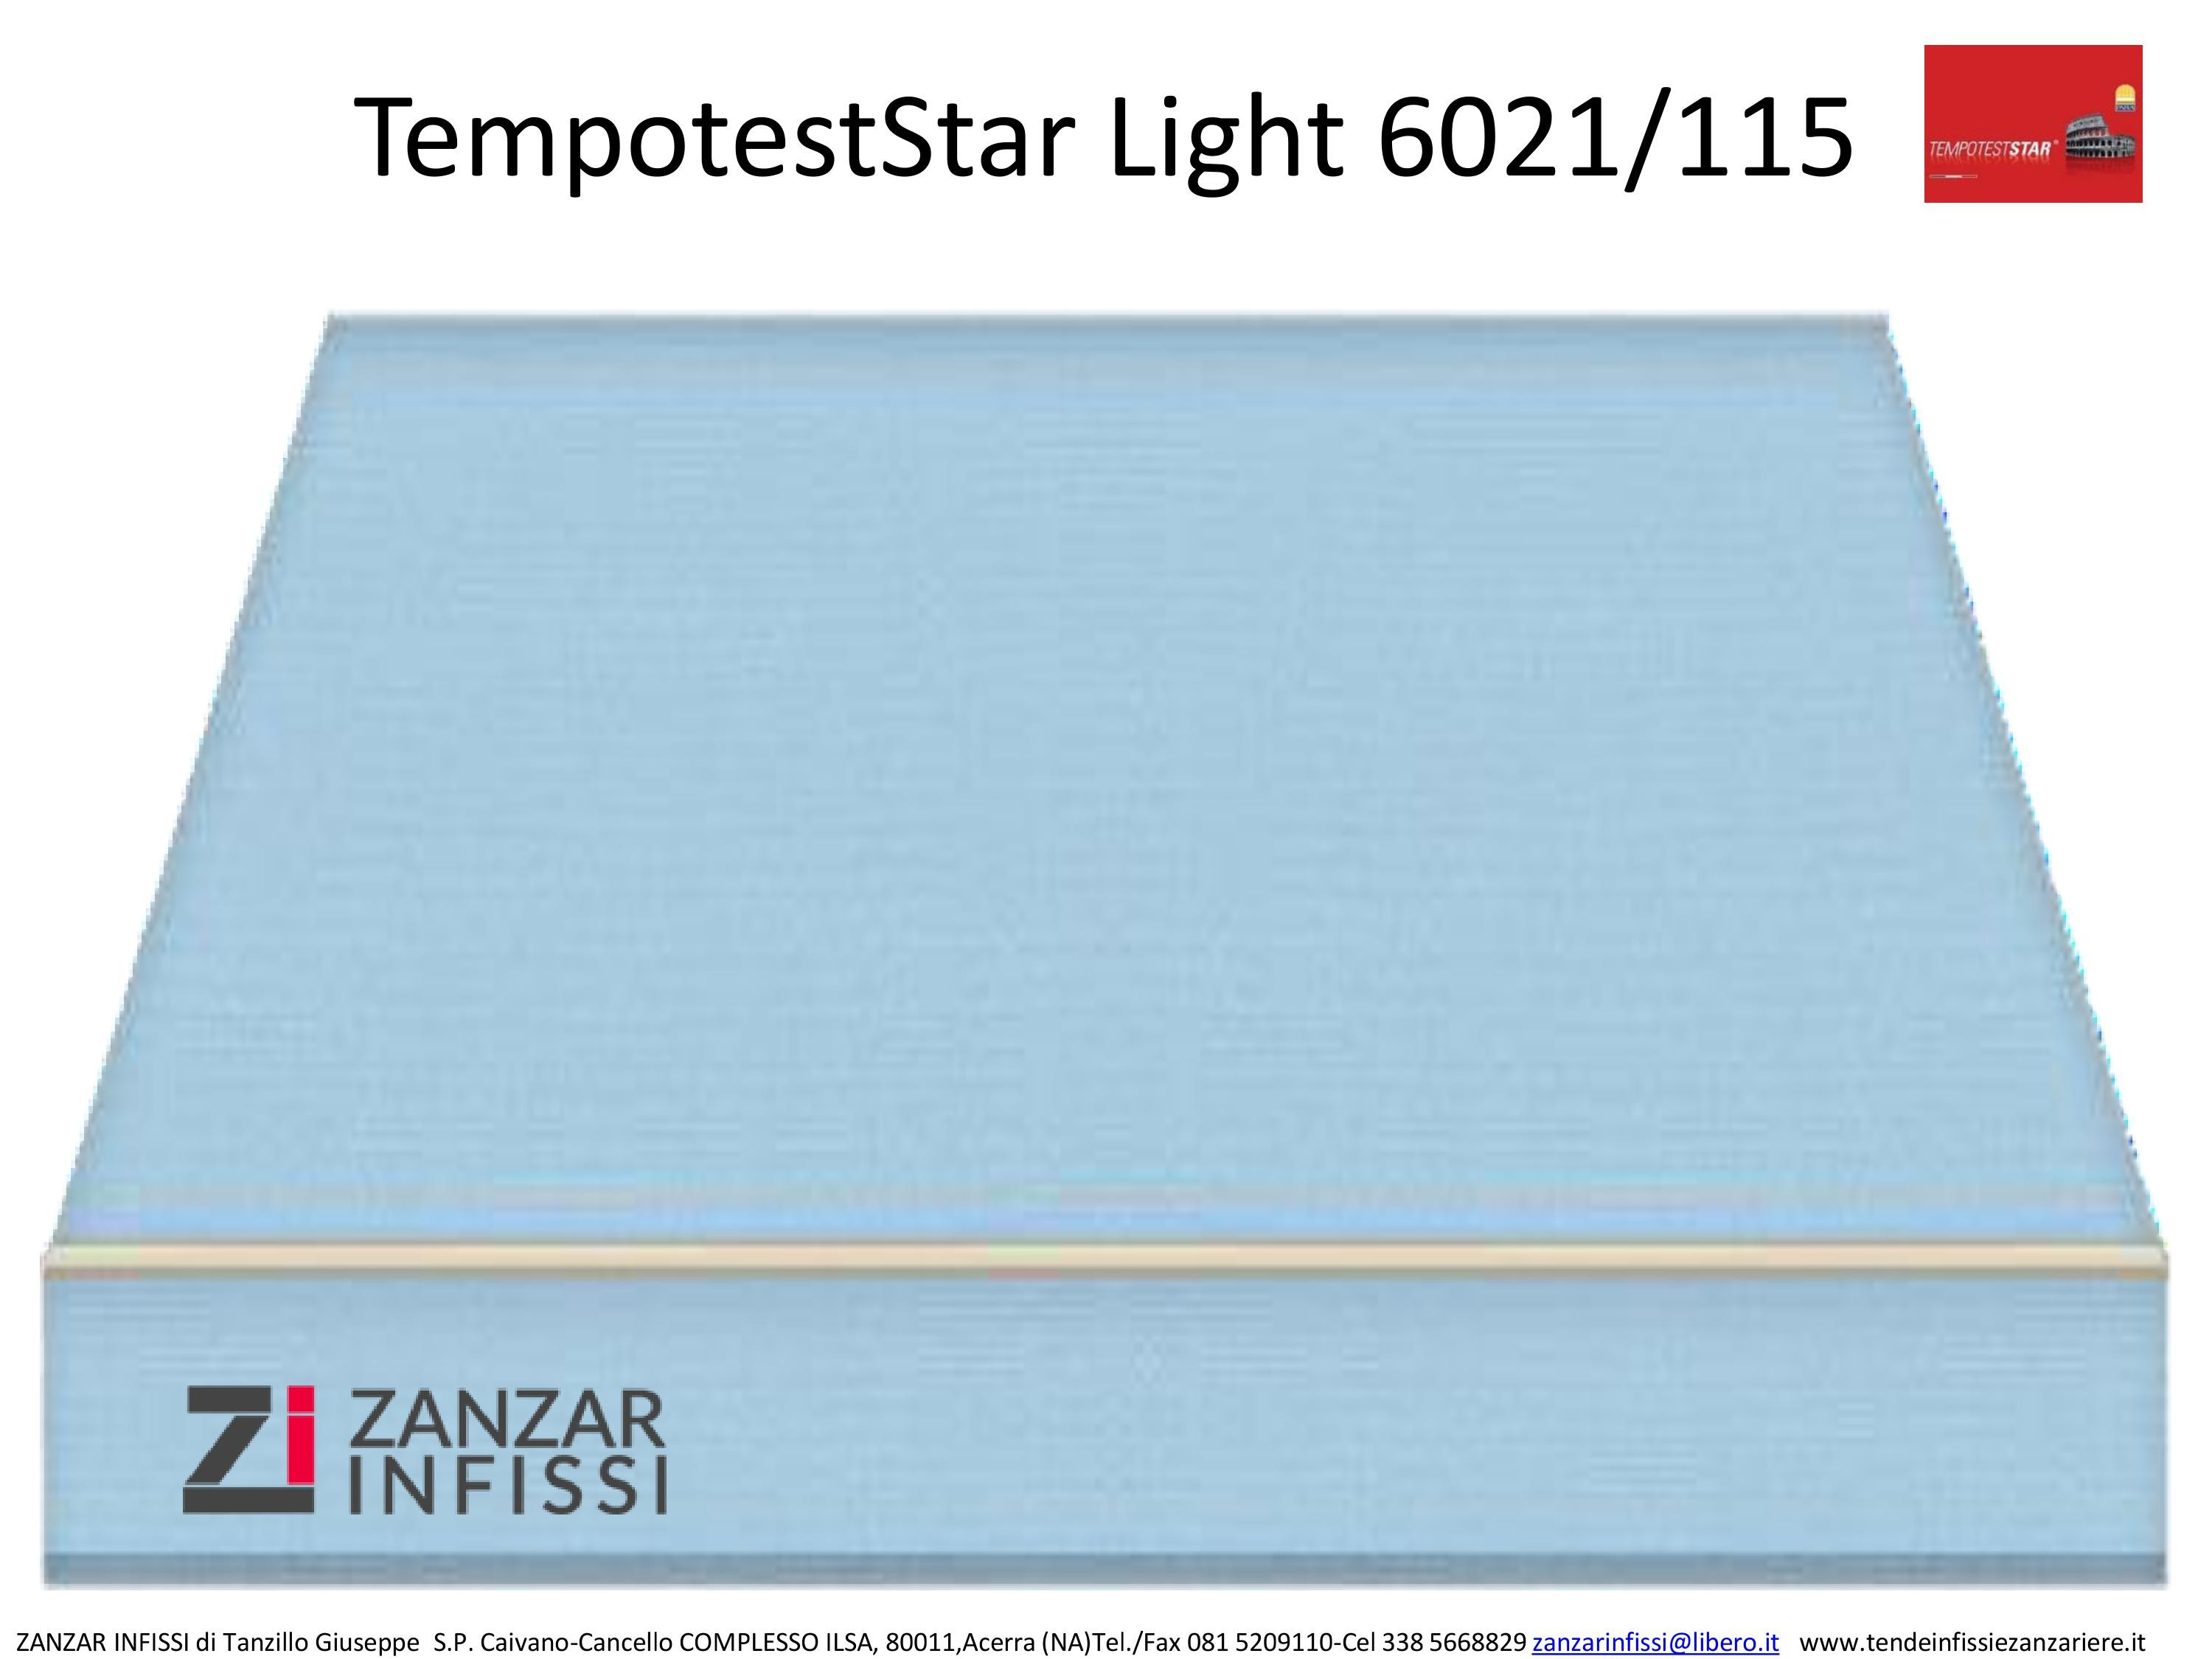 Tempotest star light 6021/115